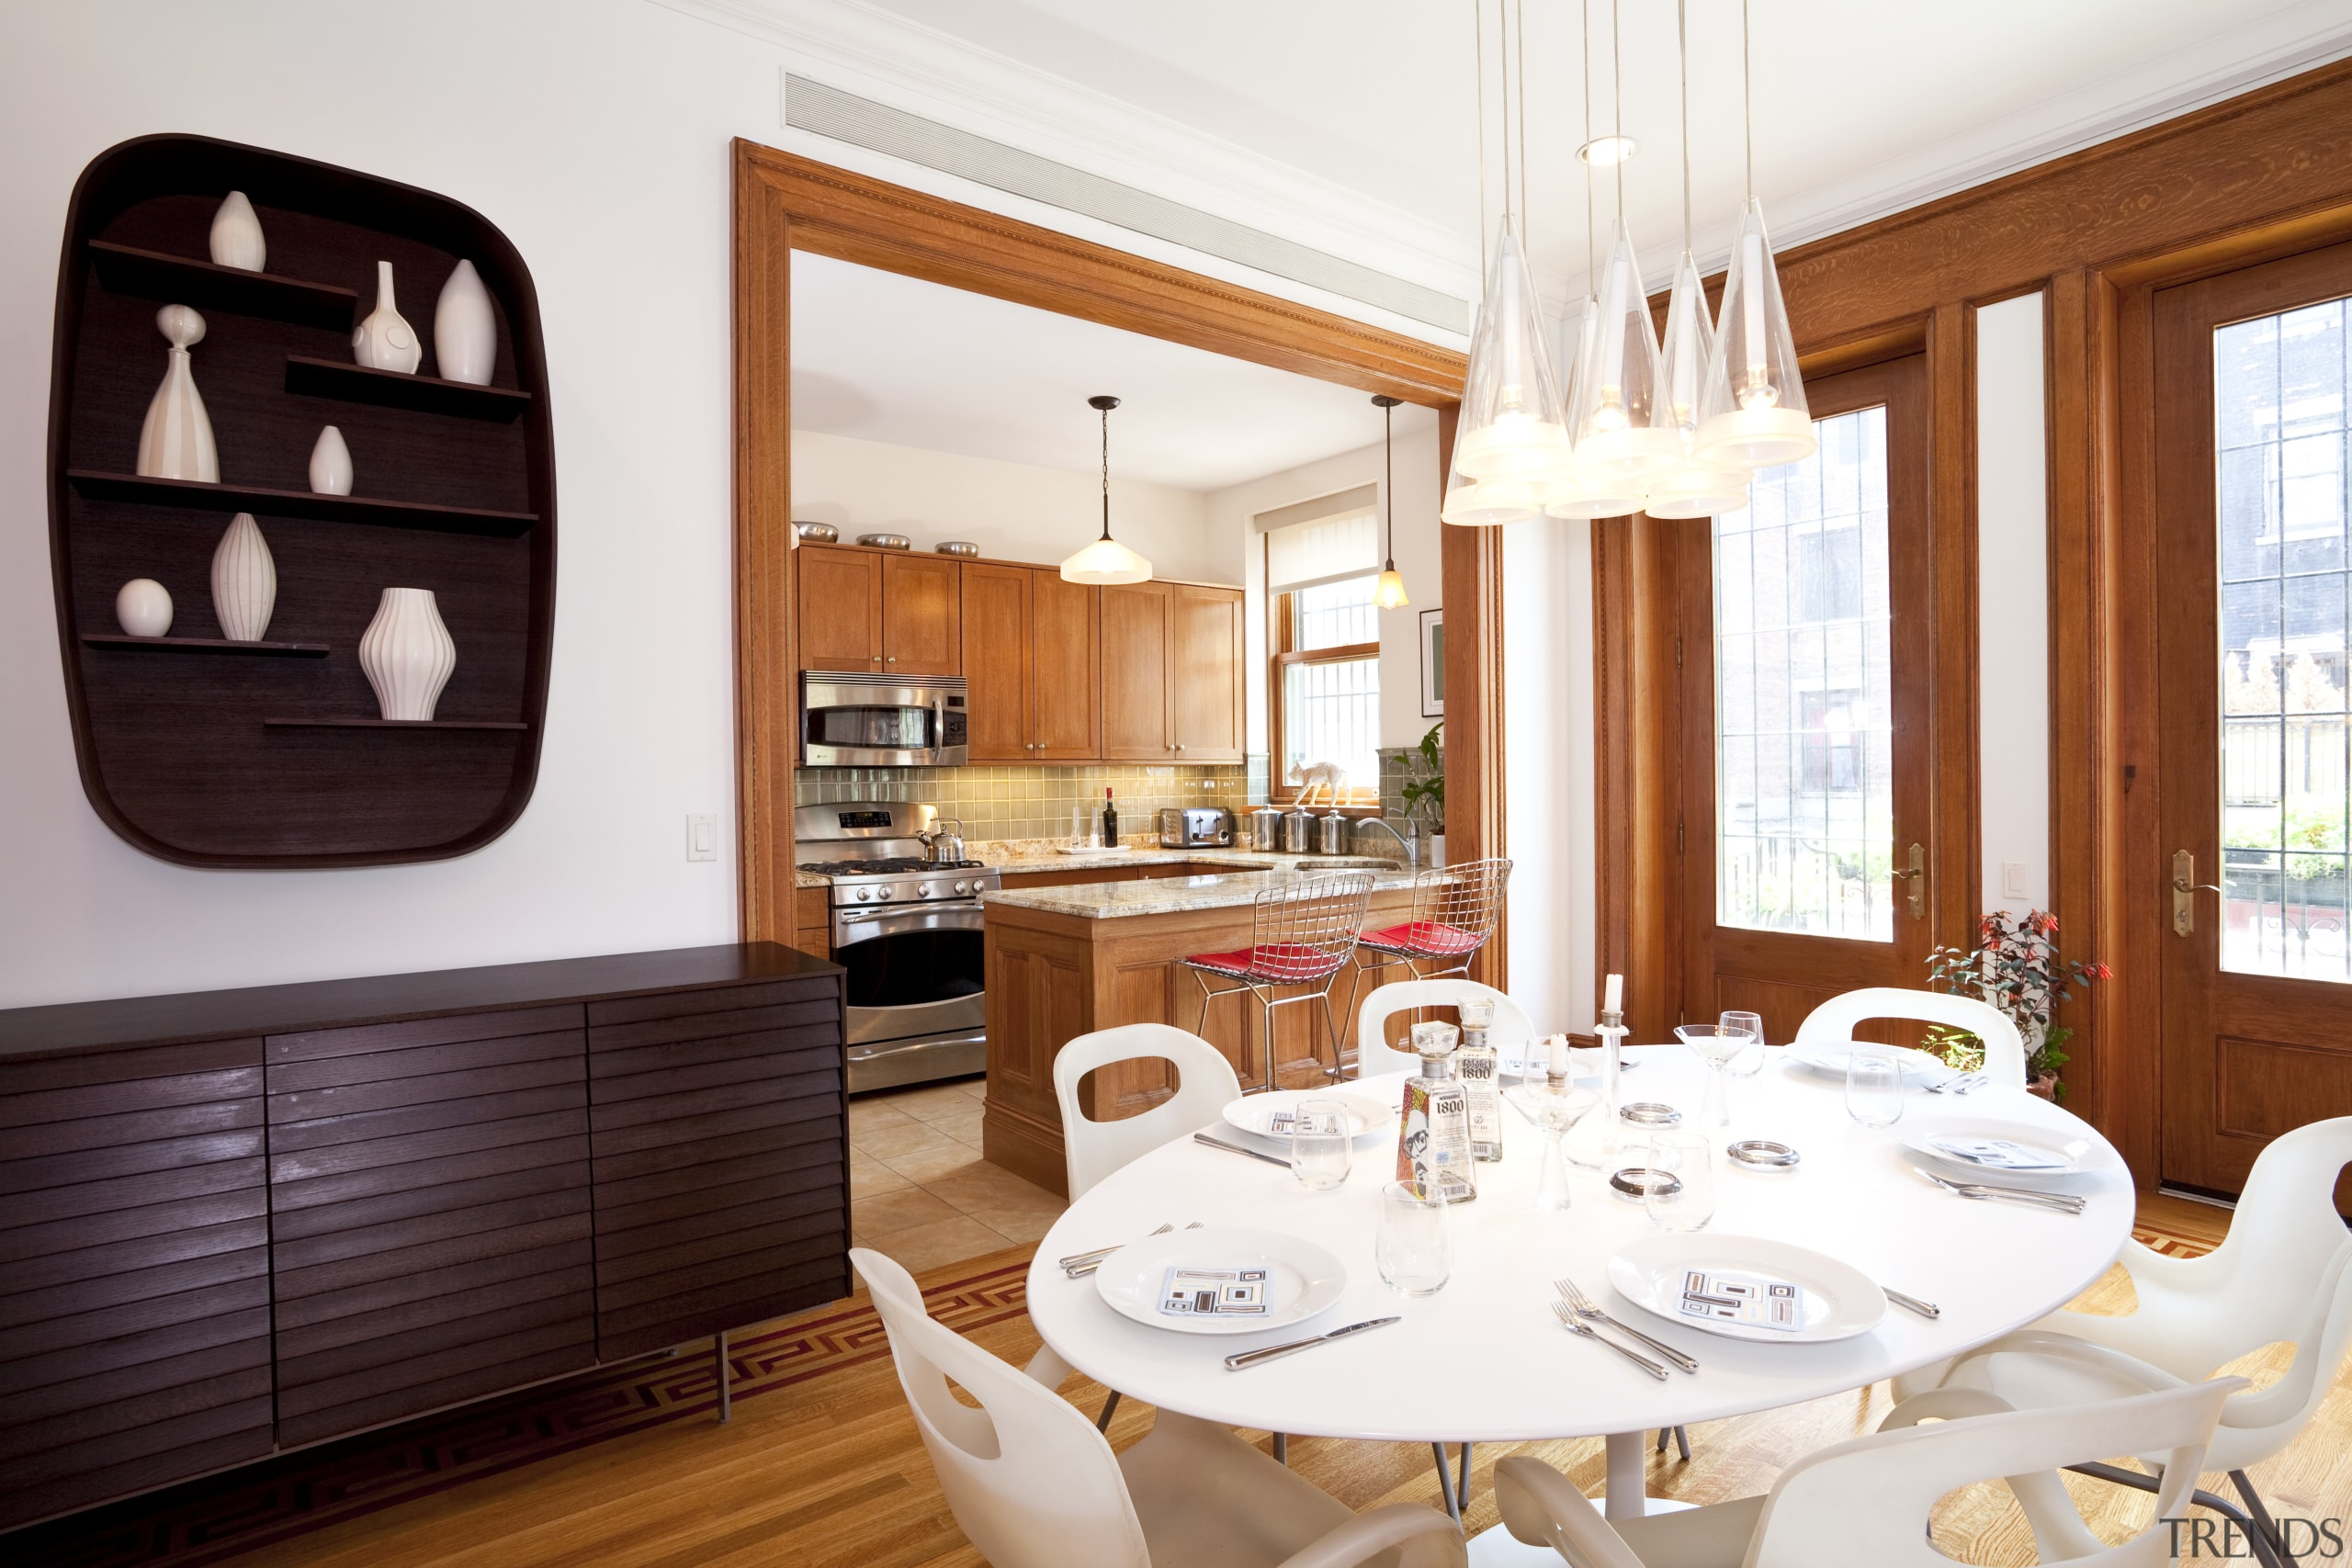 This house was remodeled by Architect Brian J. dining room, interior design, real estate, table, white